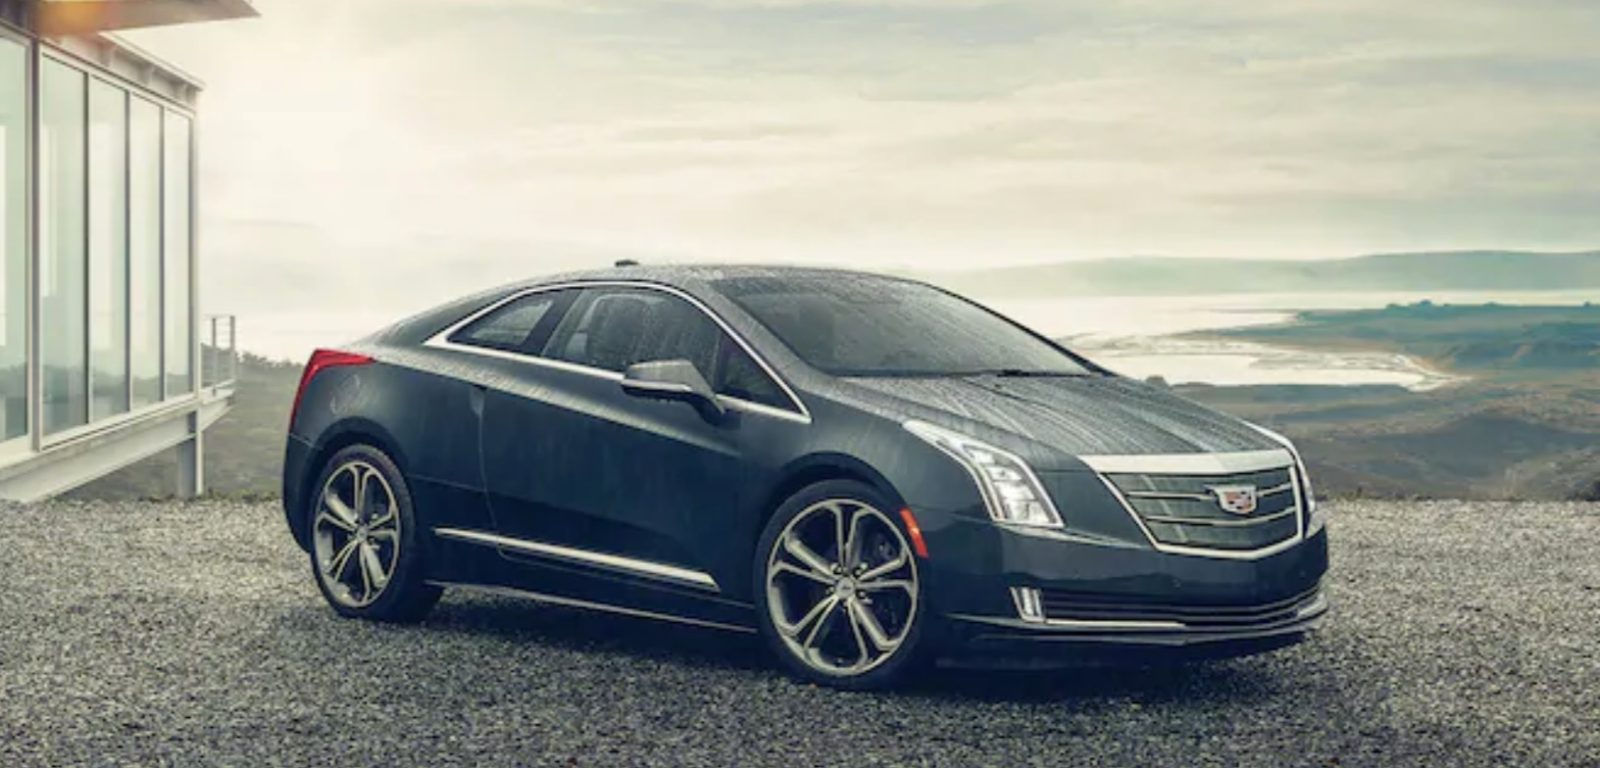 Gm Is Making The Right Move By Focusing Cadillac Brand On Electric But It Should Go Even Further